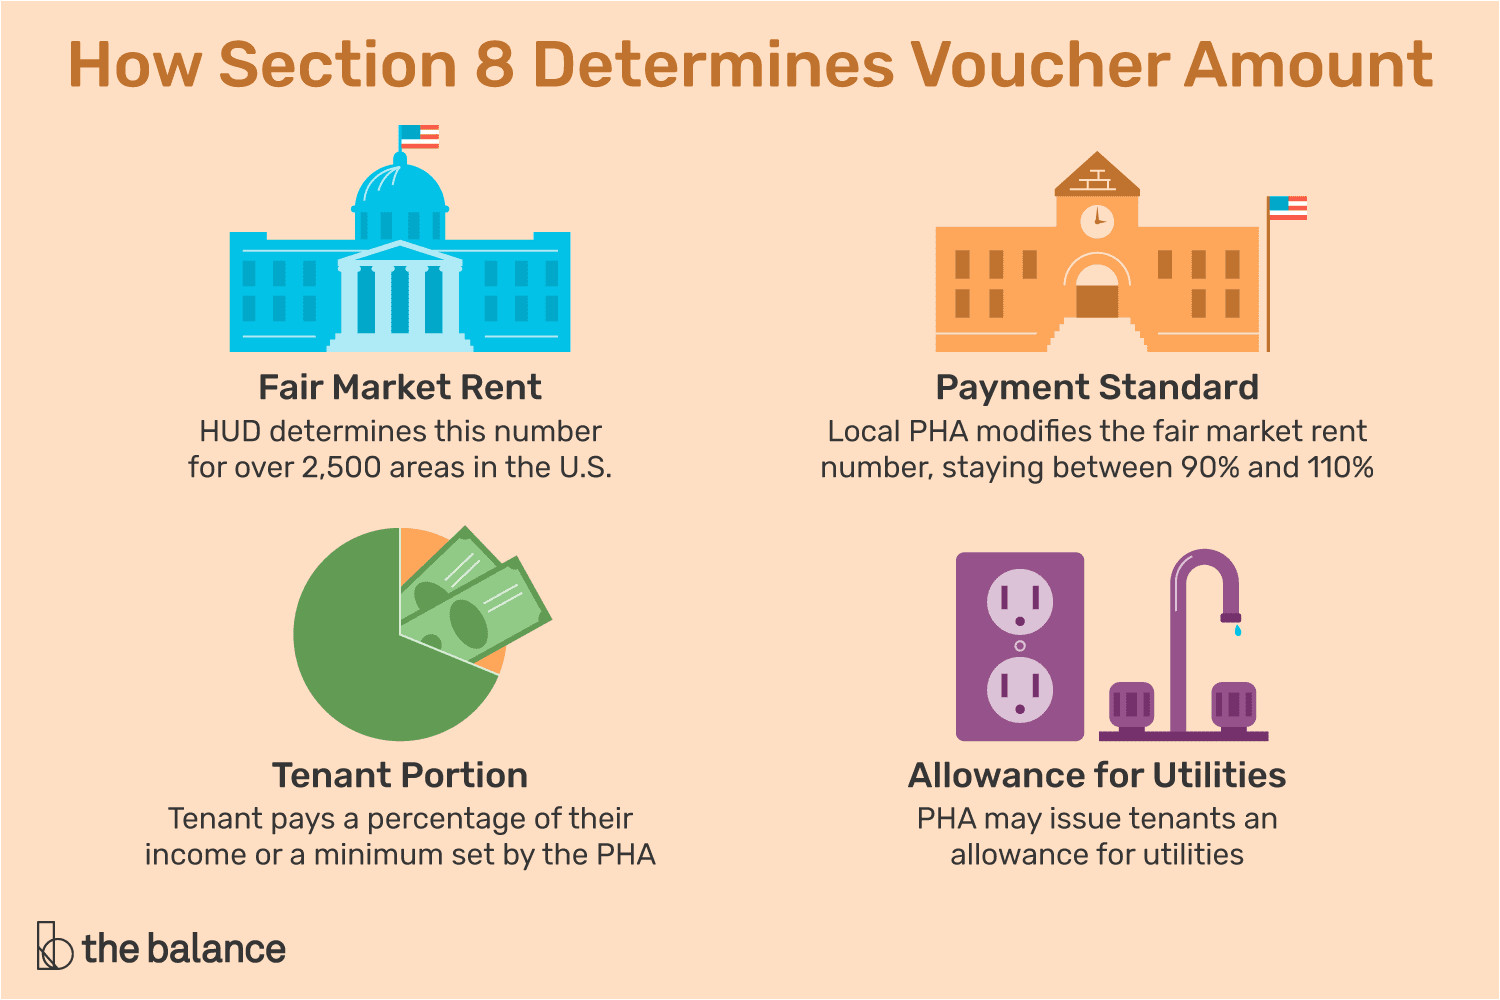 how much will section 8 pay landlords 2124978 v2 5bc4bfd8c9e77c00528fe1f6 png